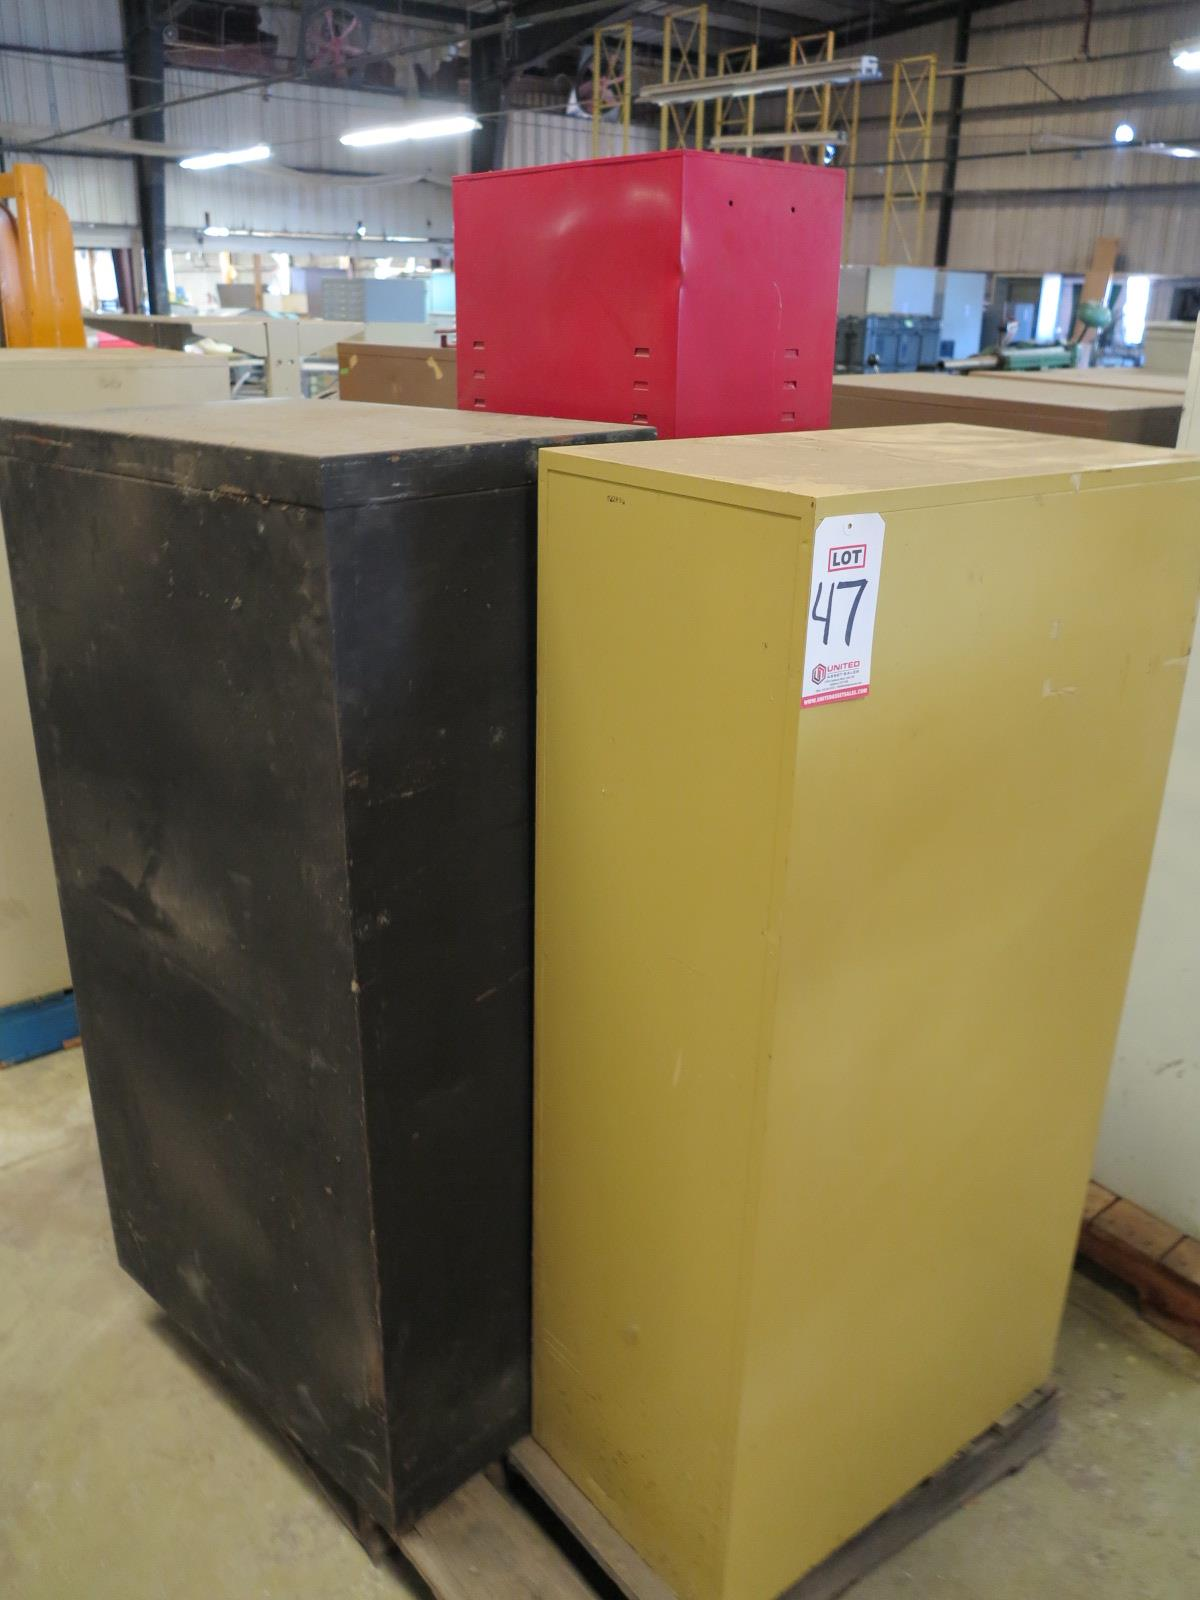 Lot 47 - LOT - PALLET W/ (3) FILE CABINETS AND (1) SMALL LOCKER